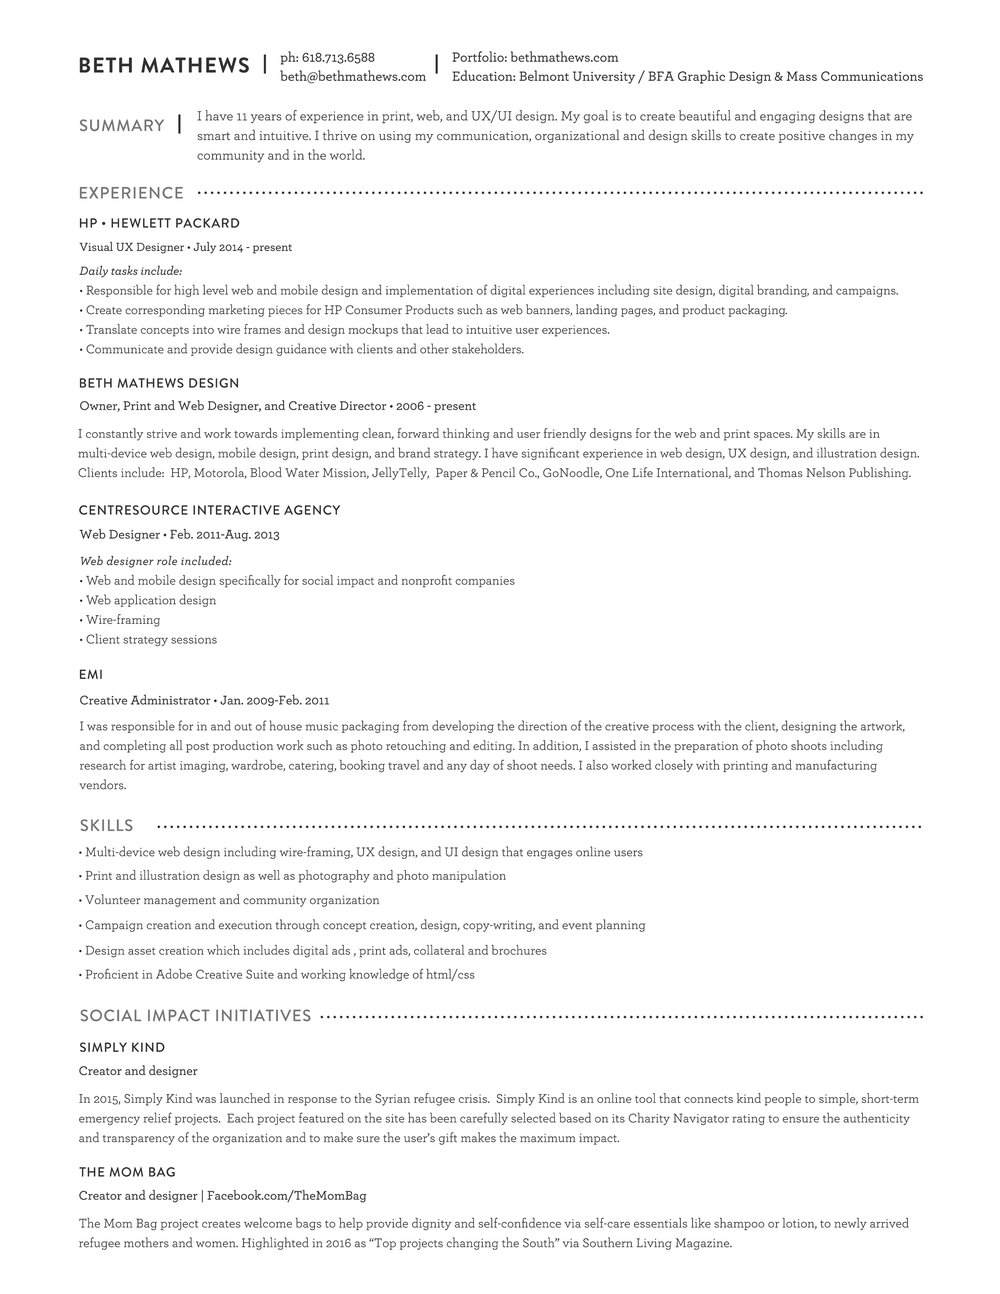 Beth Mathews Resume_2018.jpg